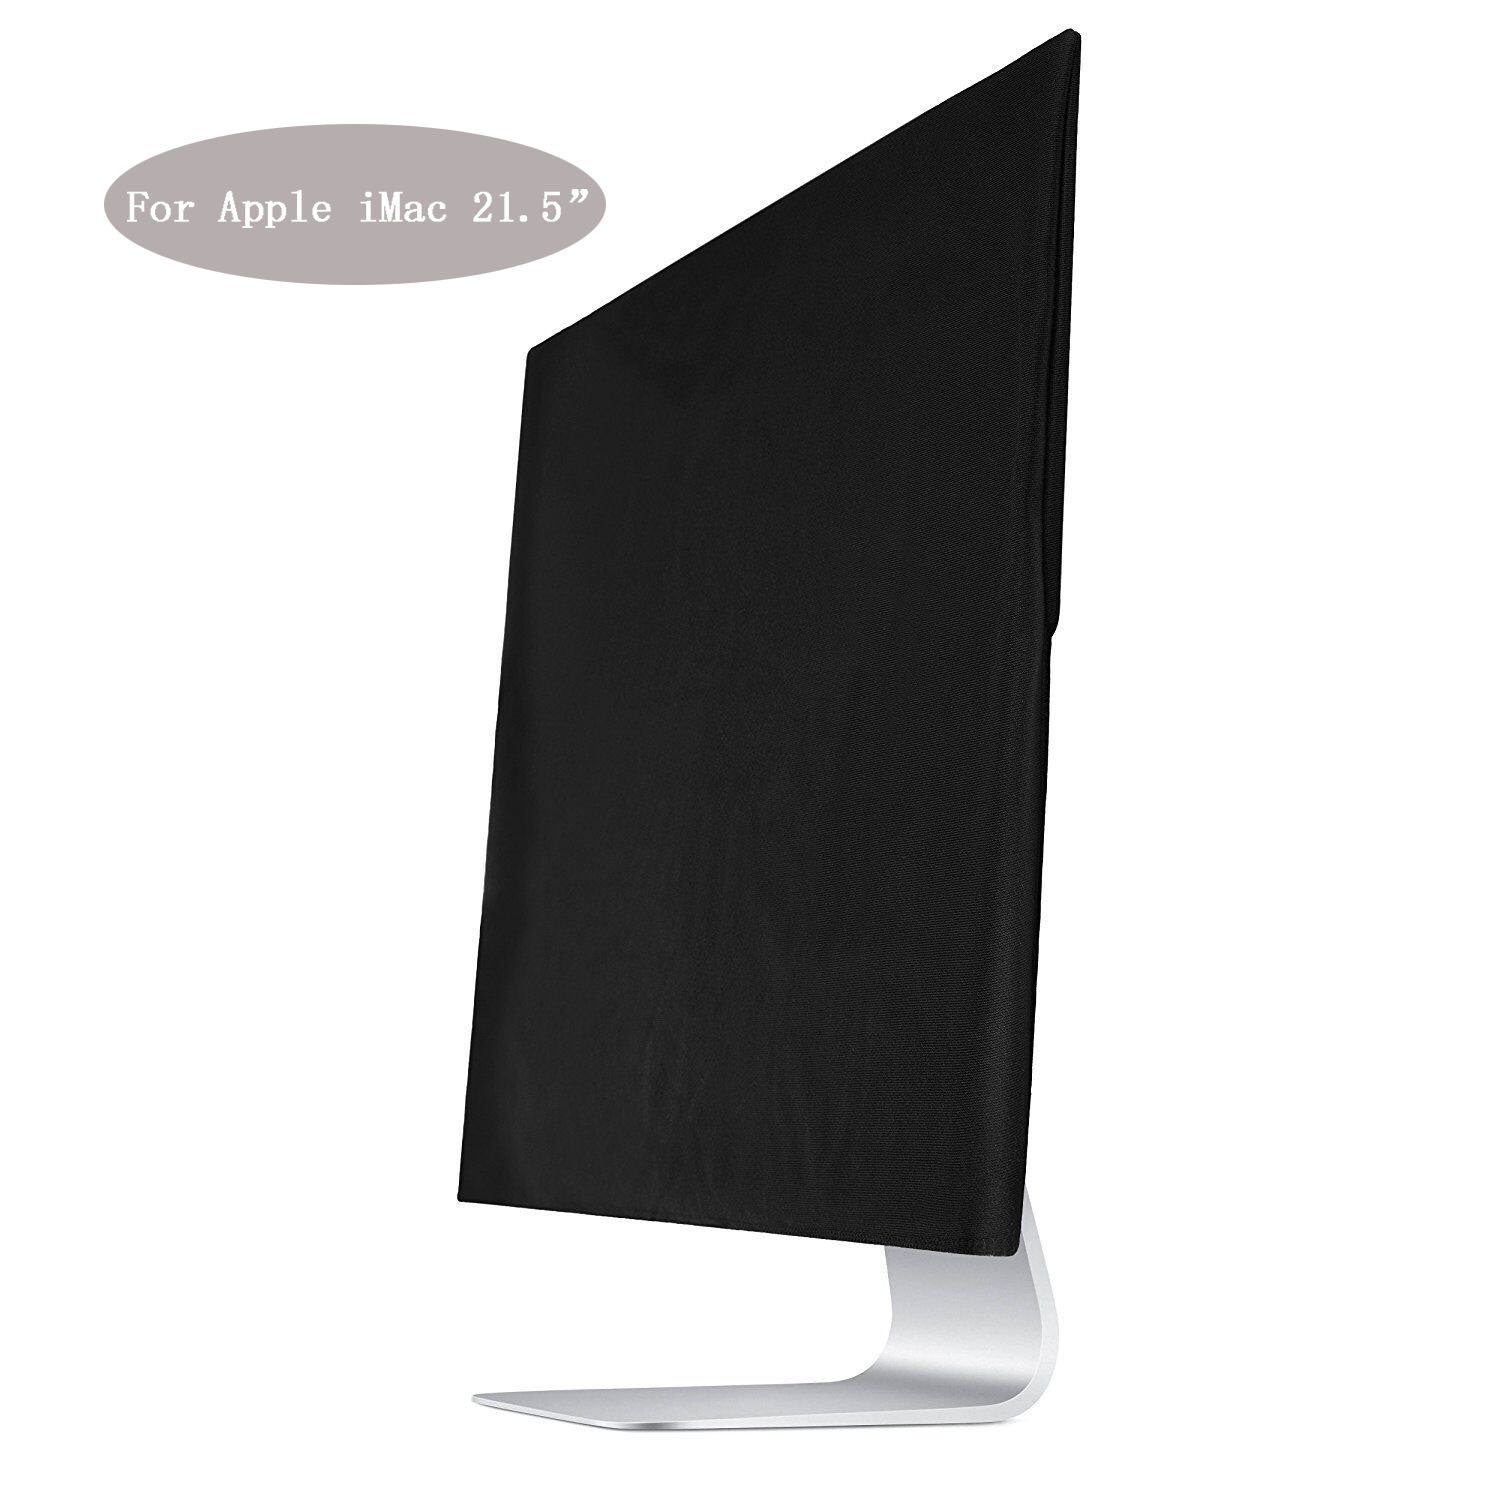 Wanty Black Full Display Dust Covers Screen Sleeve with Inner Soft Lining for Apple iMac (27 inch) Wanty Direct